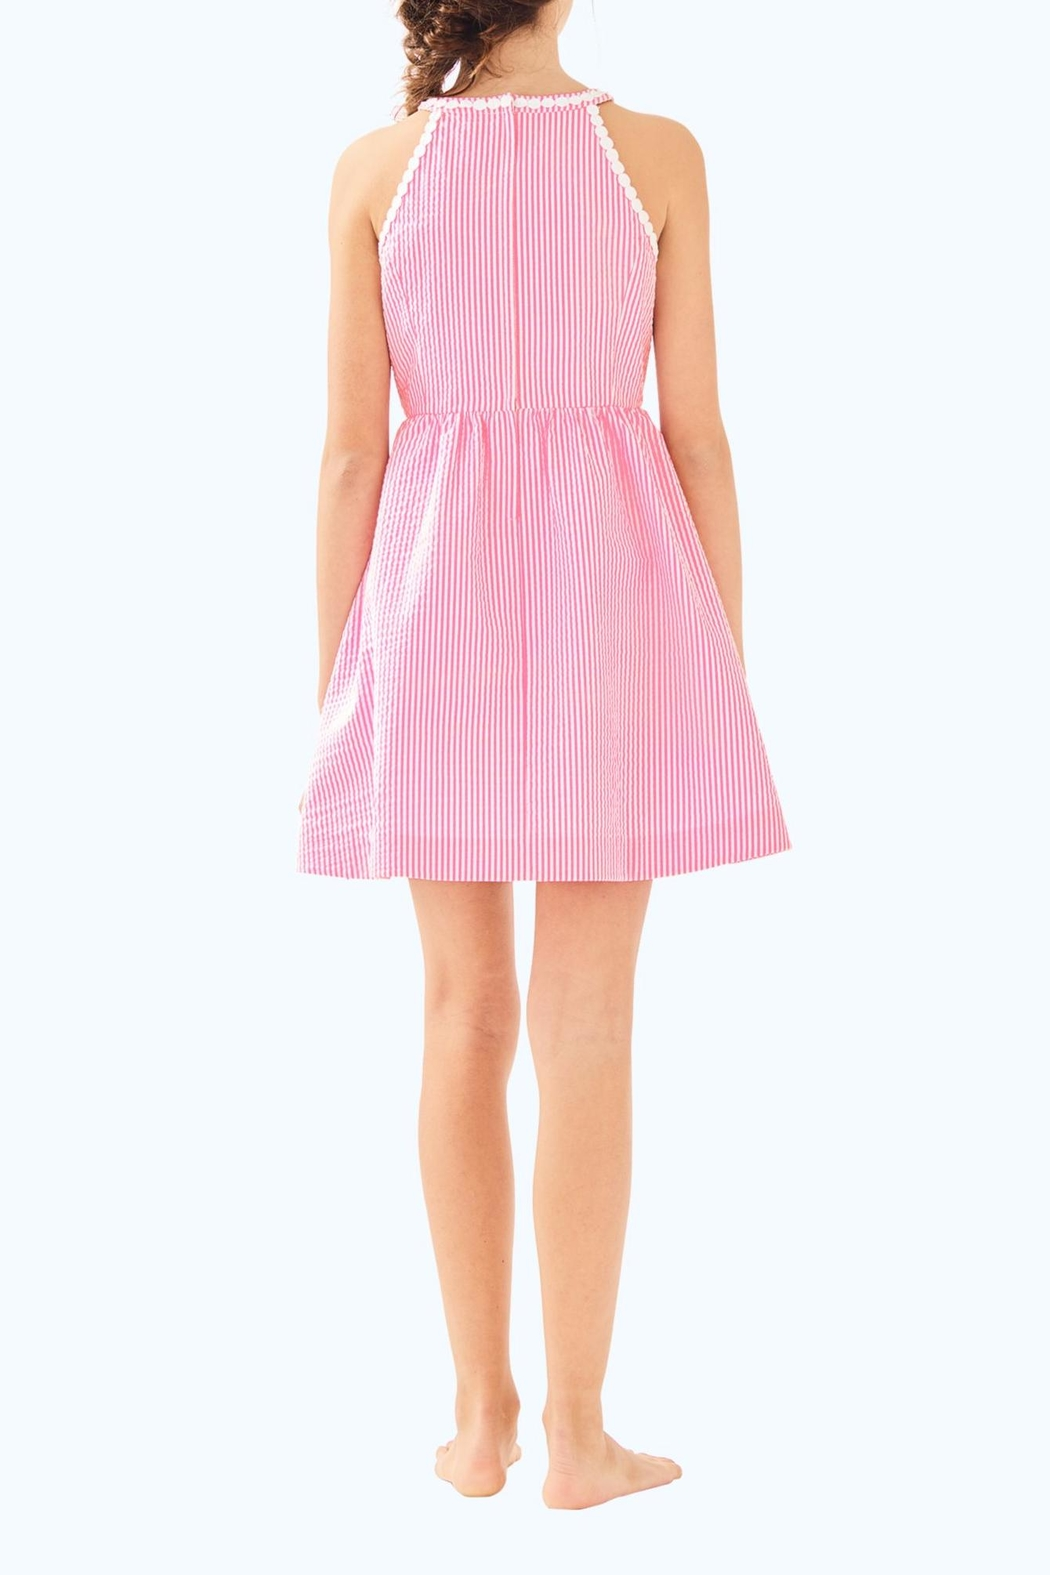 Lilly Pulitzer Kinley Dress - Side Cropped Image